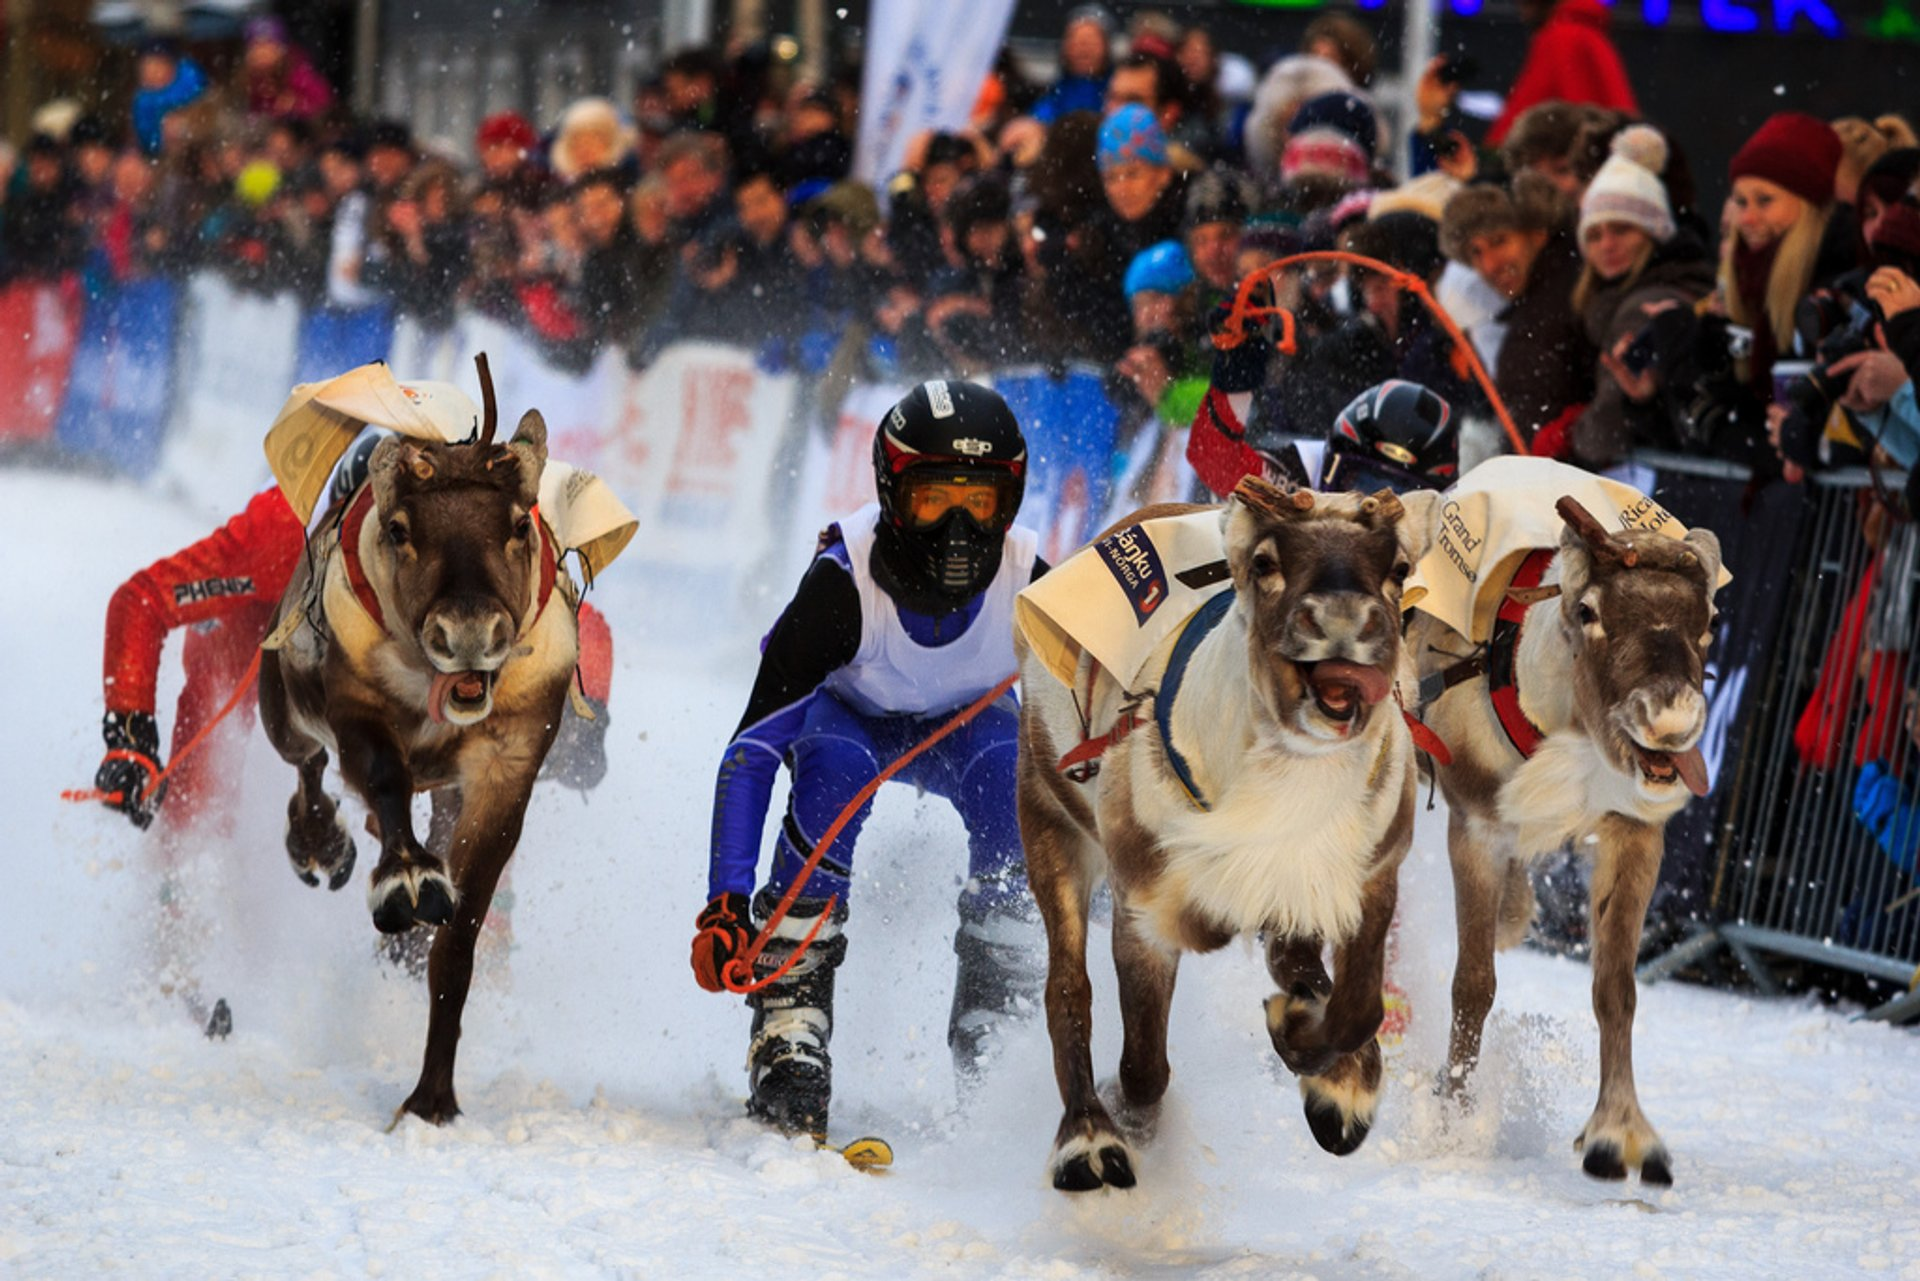 World Reindeer Racing Championships in Norway 2020 - Best Time